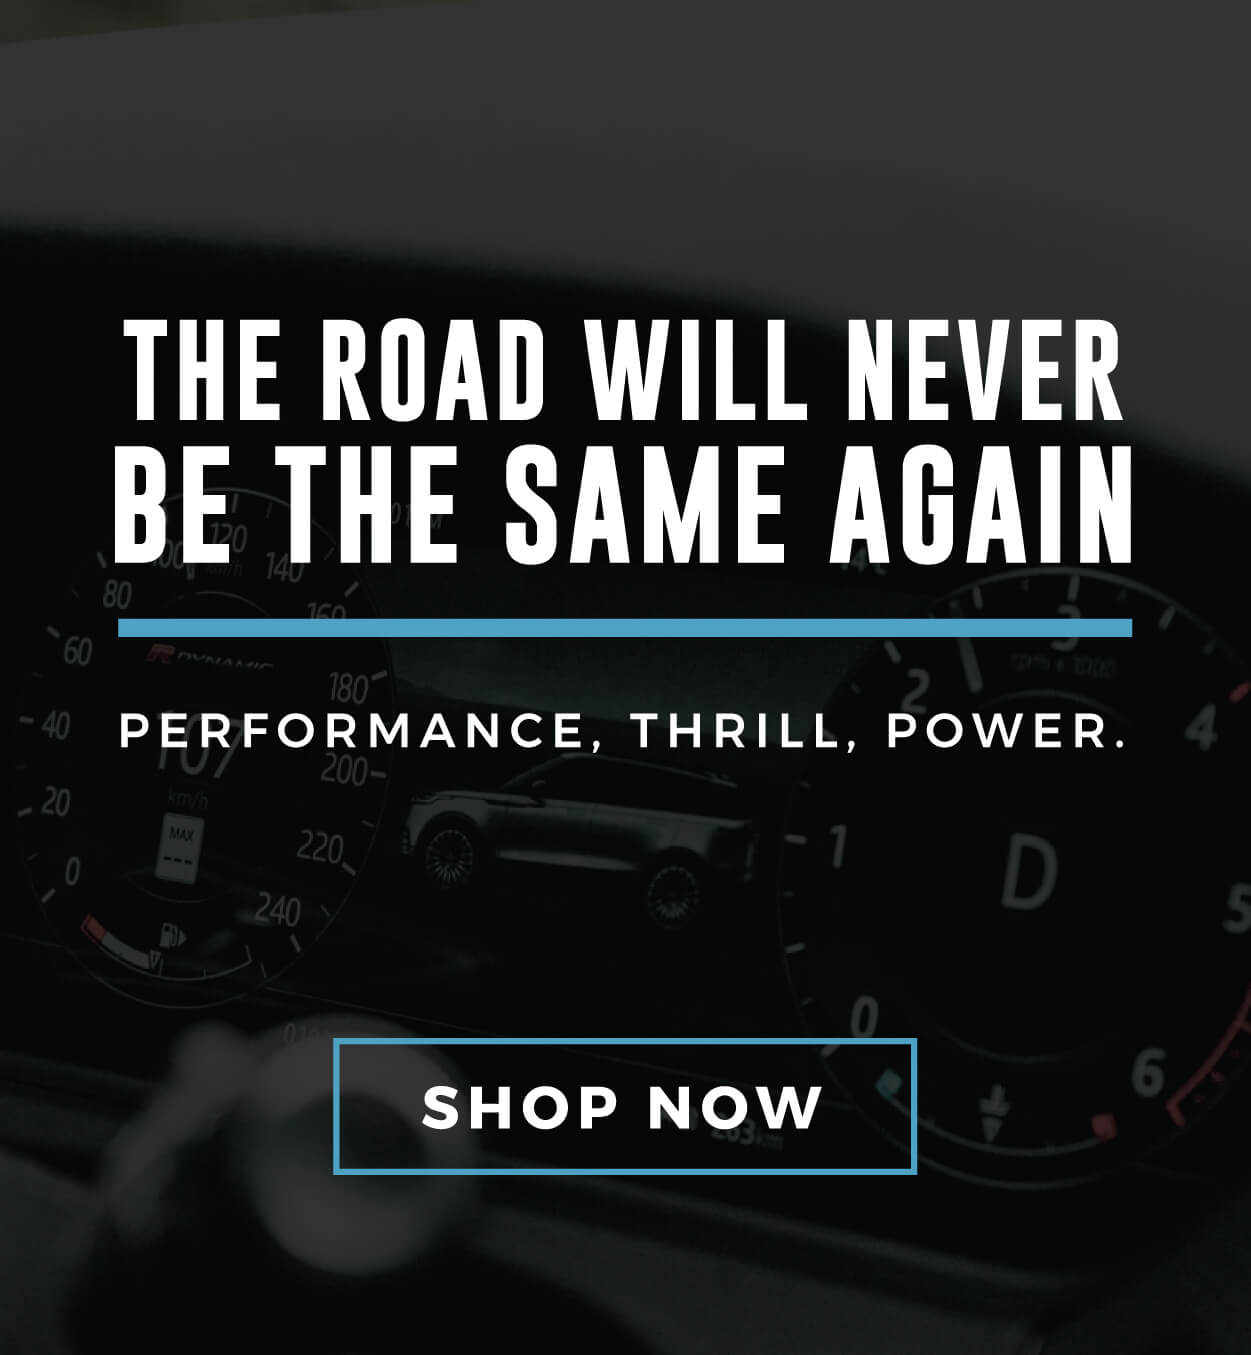 Performance, Thrills, and Power at Humberview Motorsports